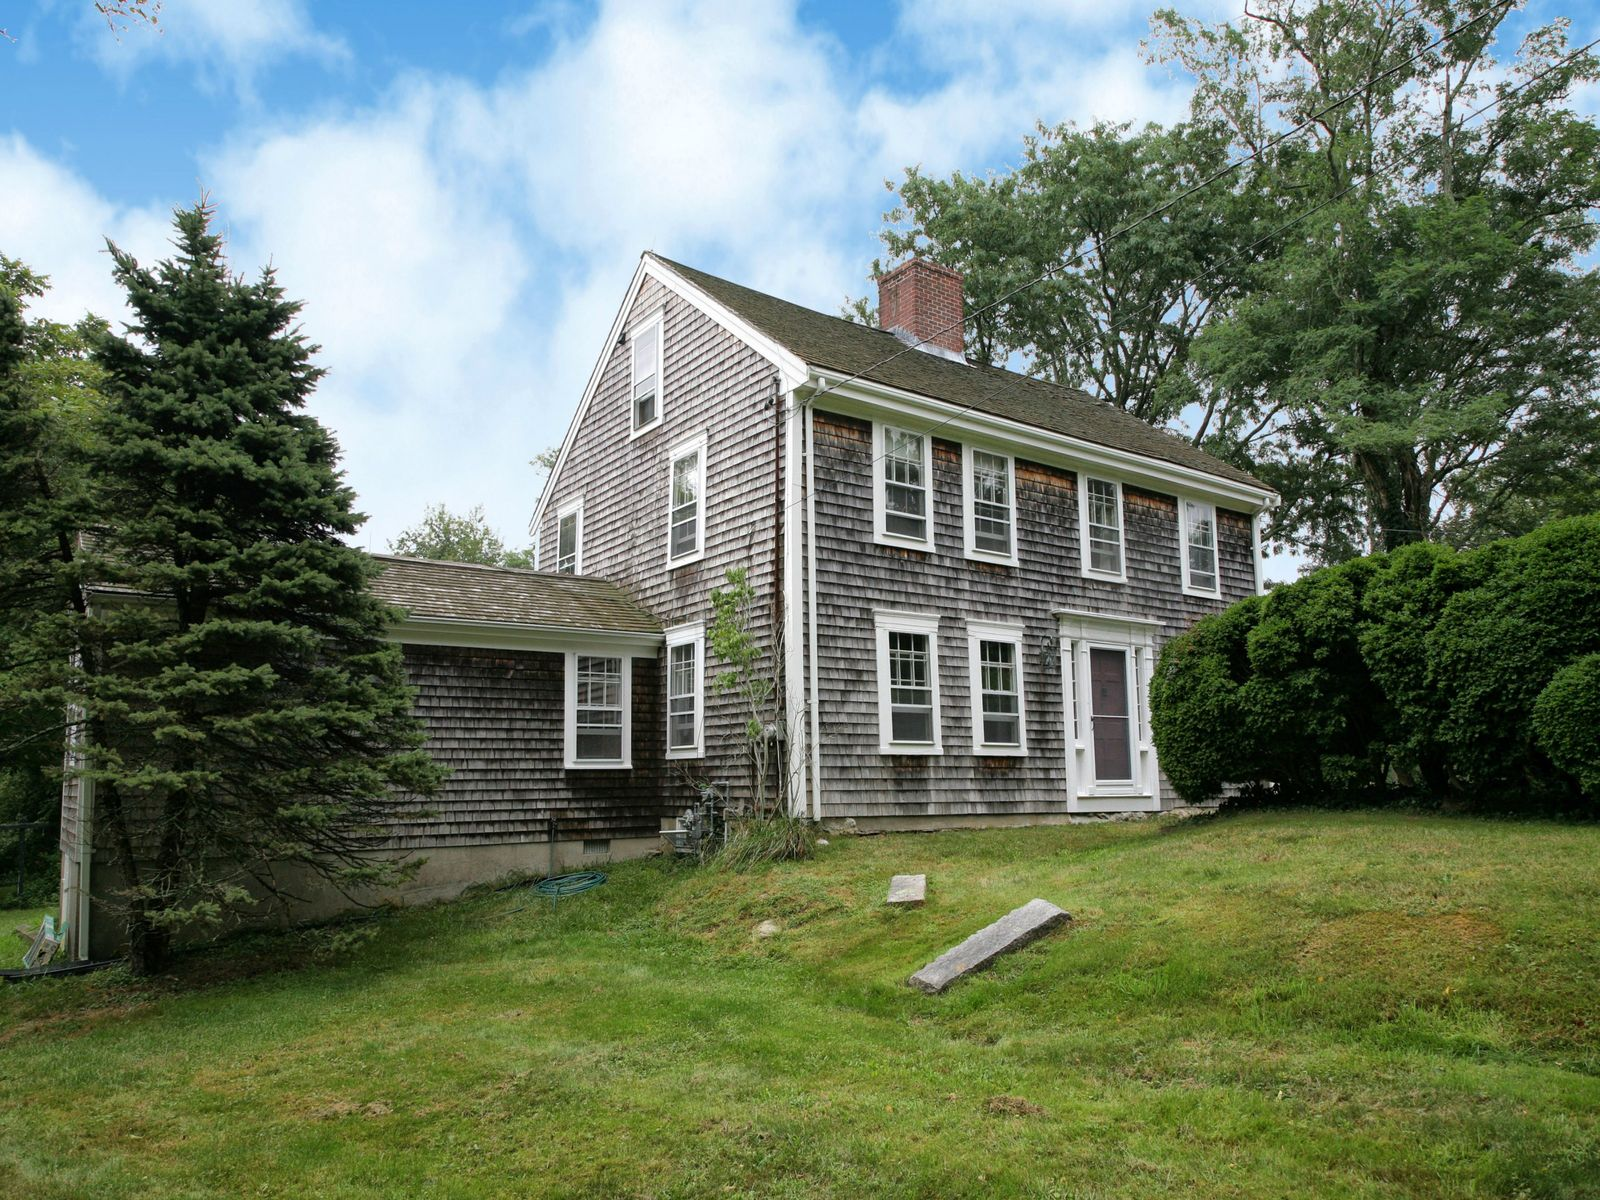 Charming Country Antique, West Barnstable MA Single Family Home - Cape Cod Real Estate